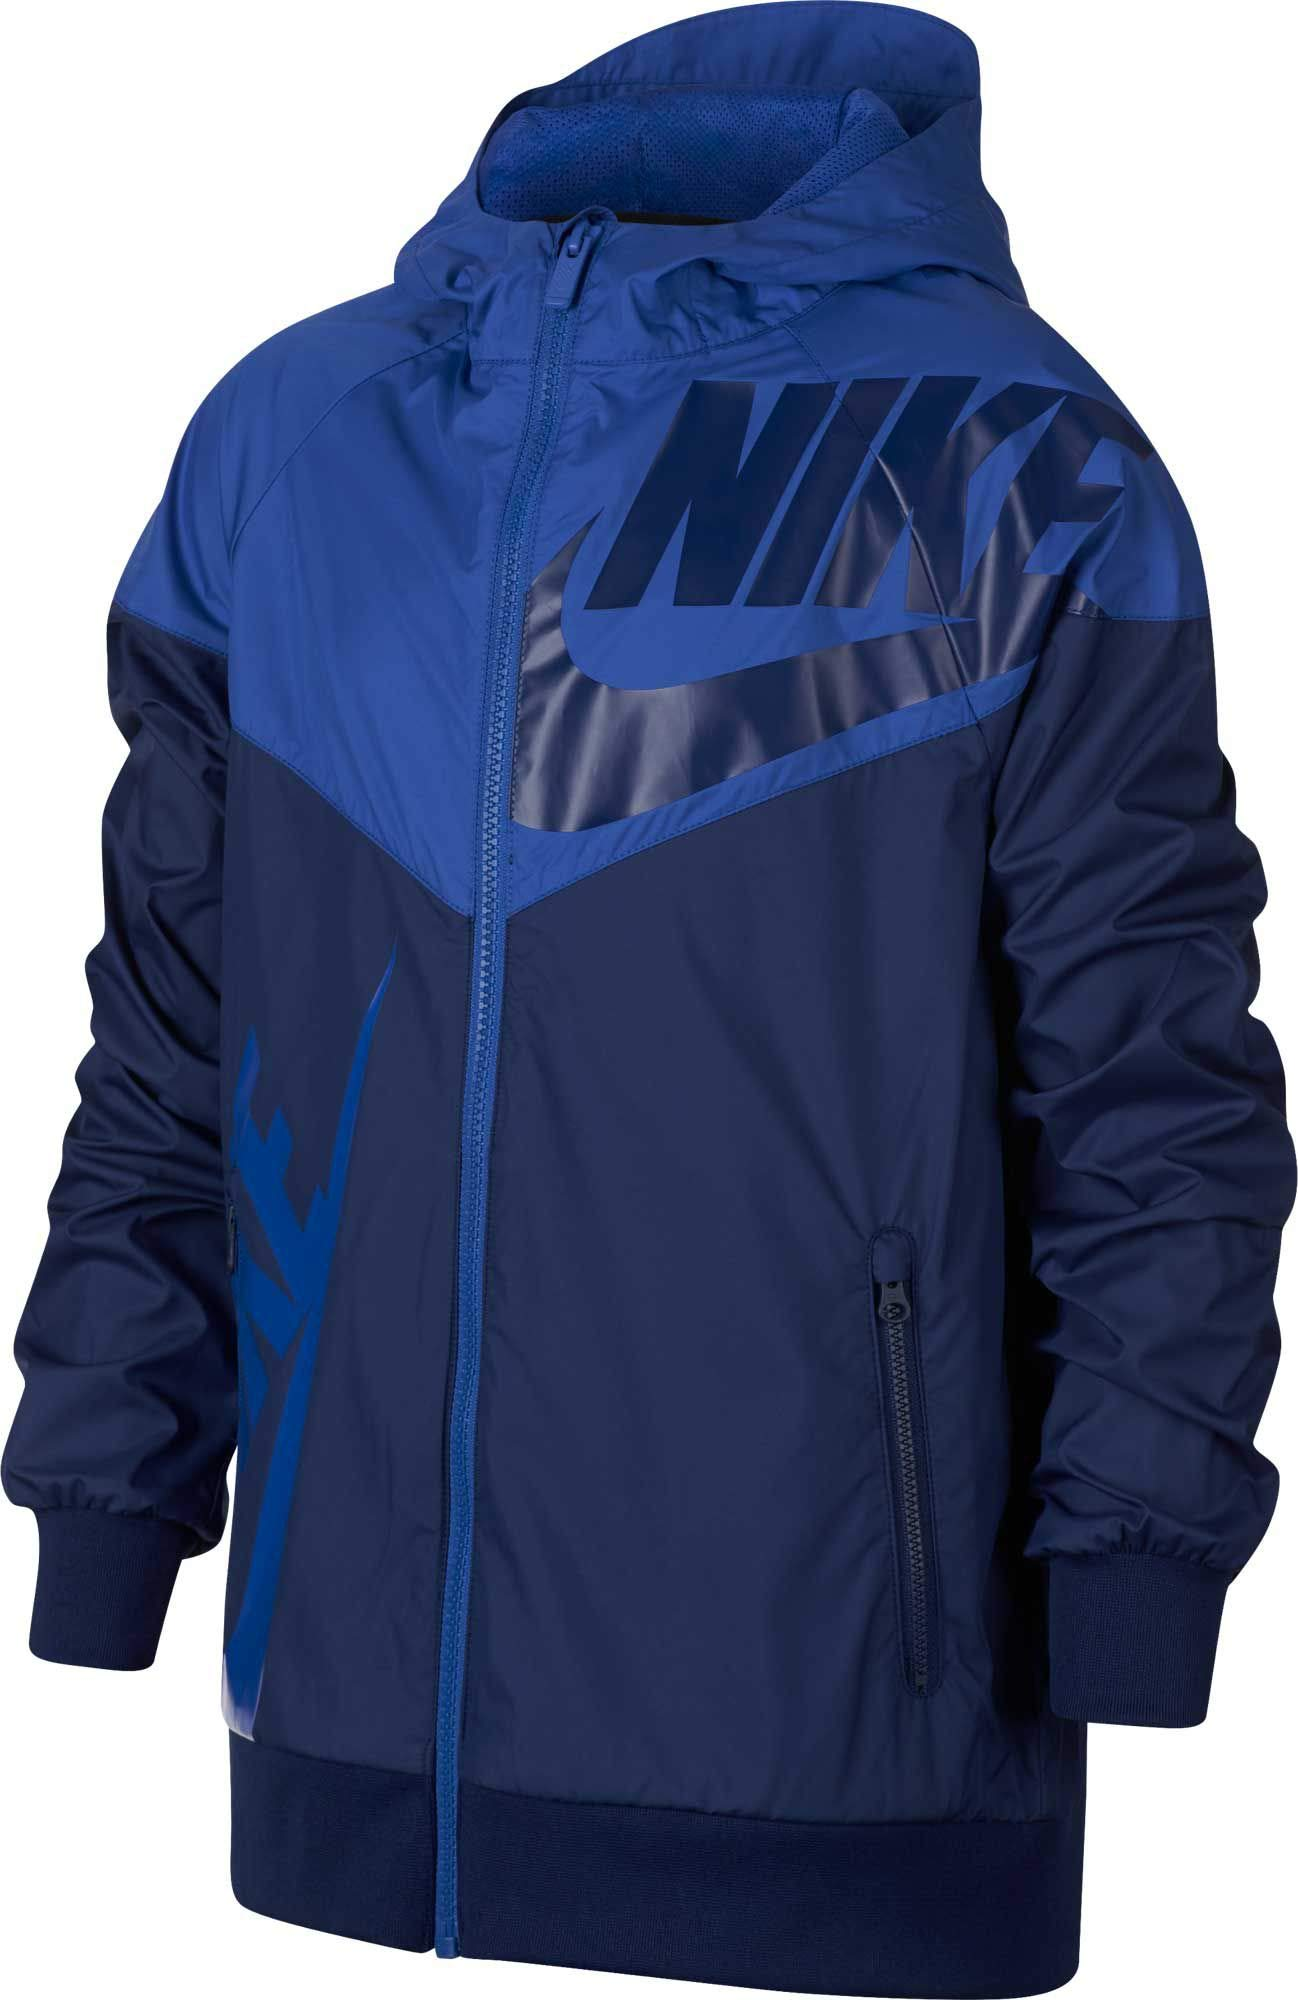 Nike Boy's Sportswear Graphic Windrunner Jacket (Blue, Medium) by Nike (Image #1)